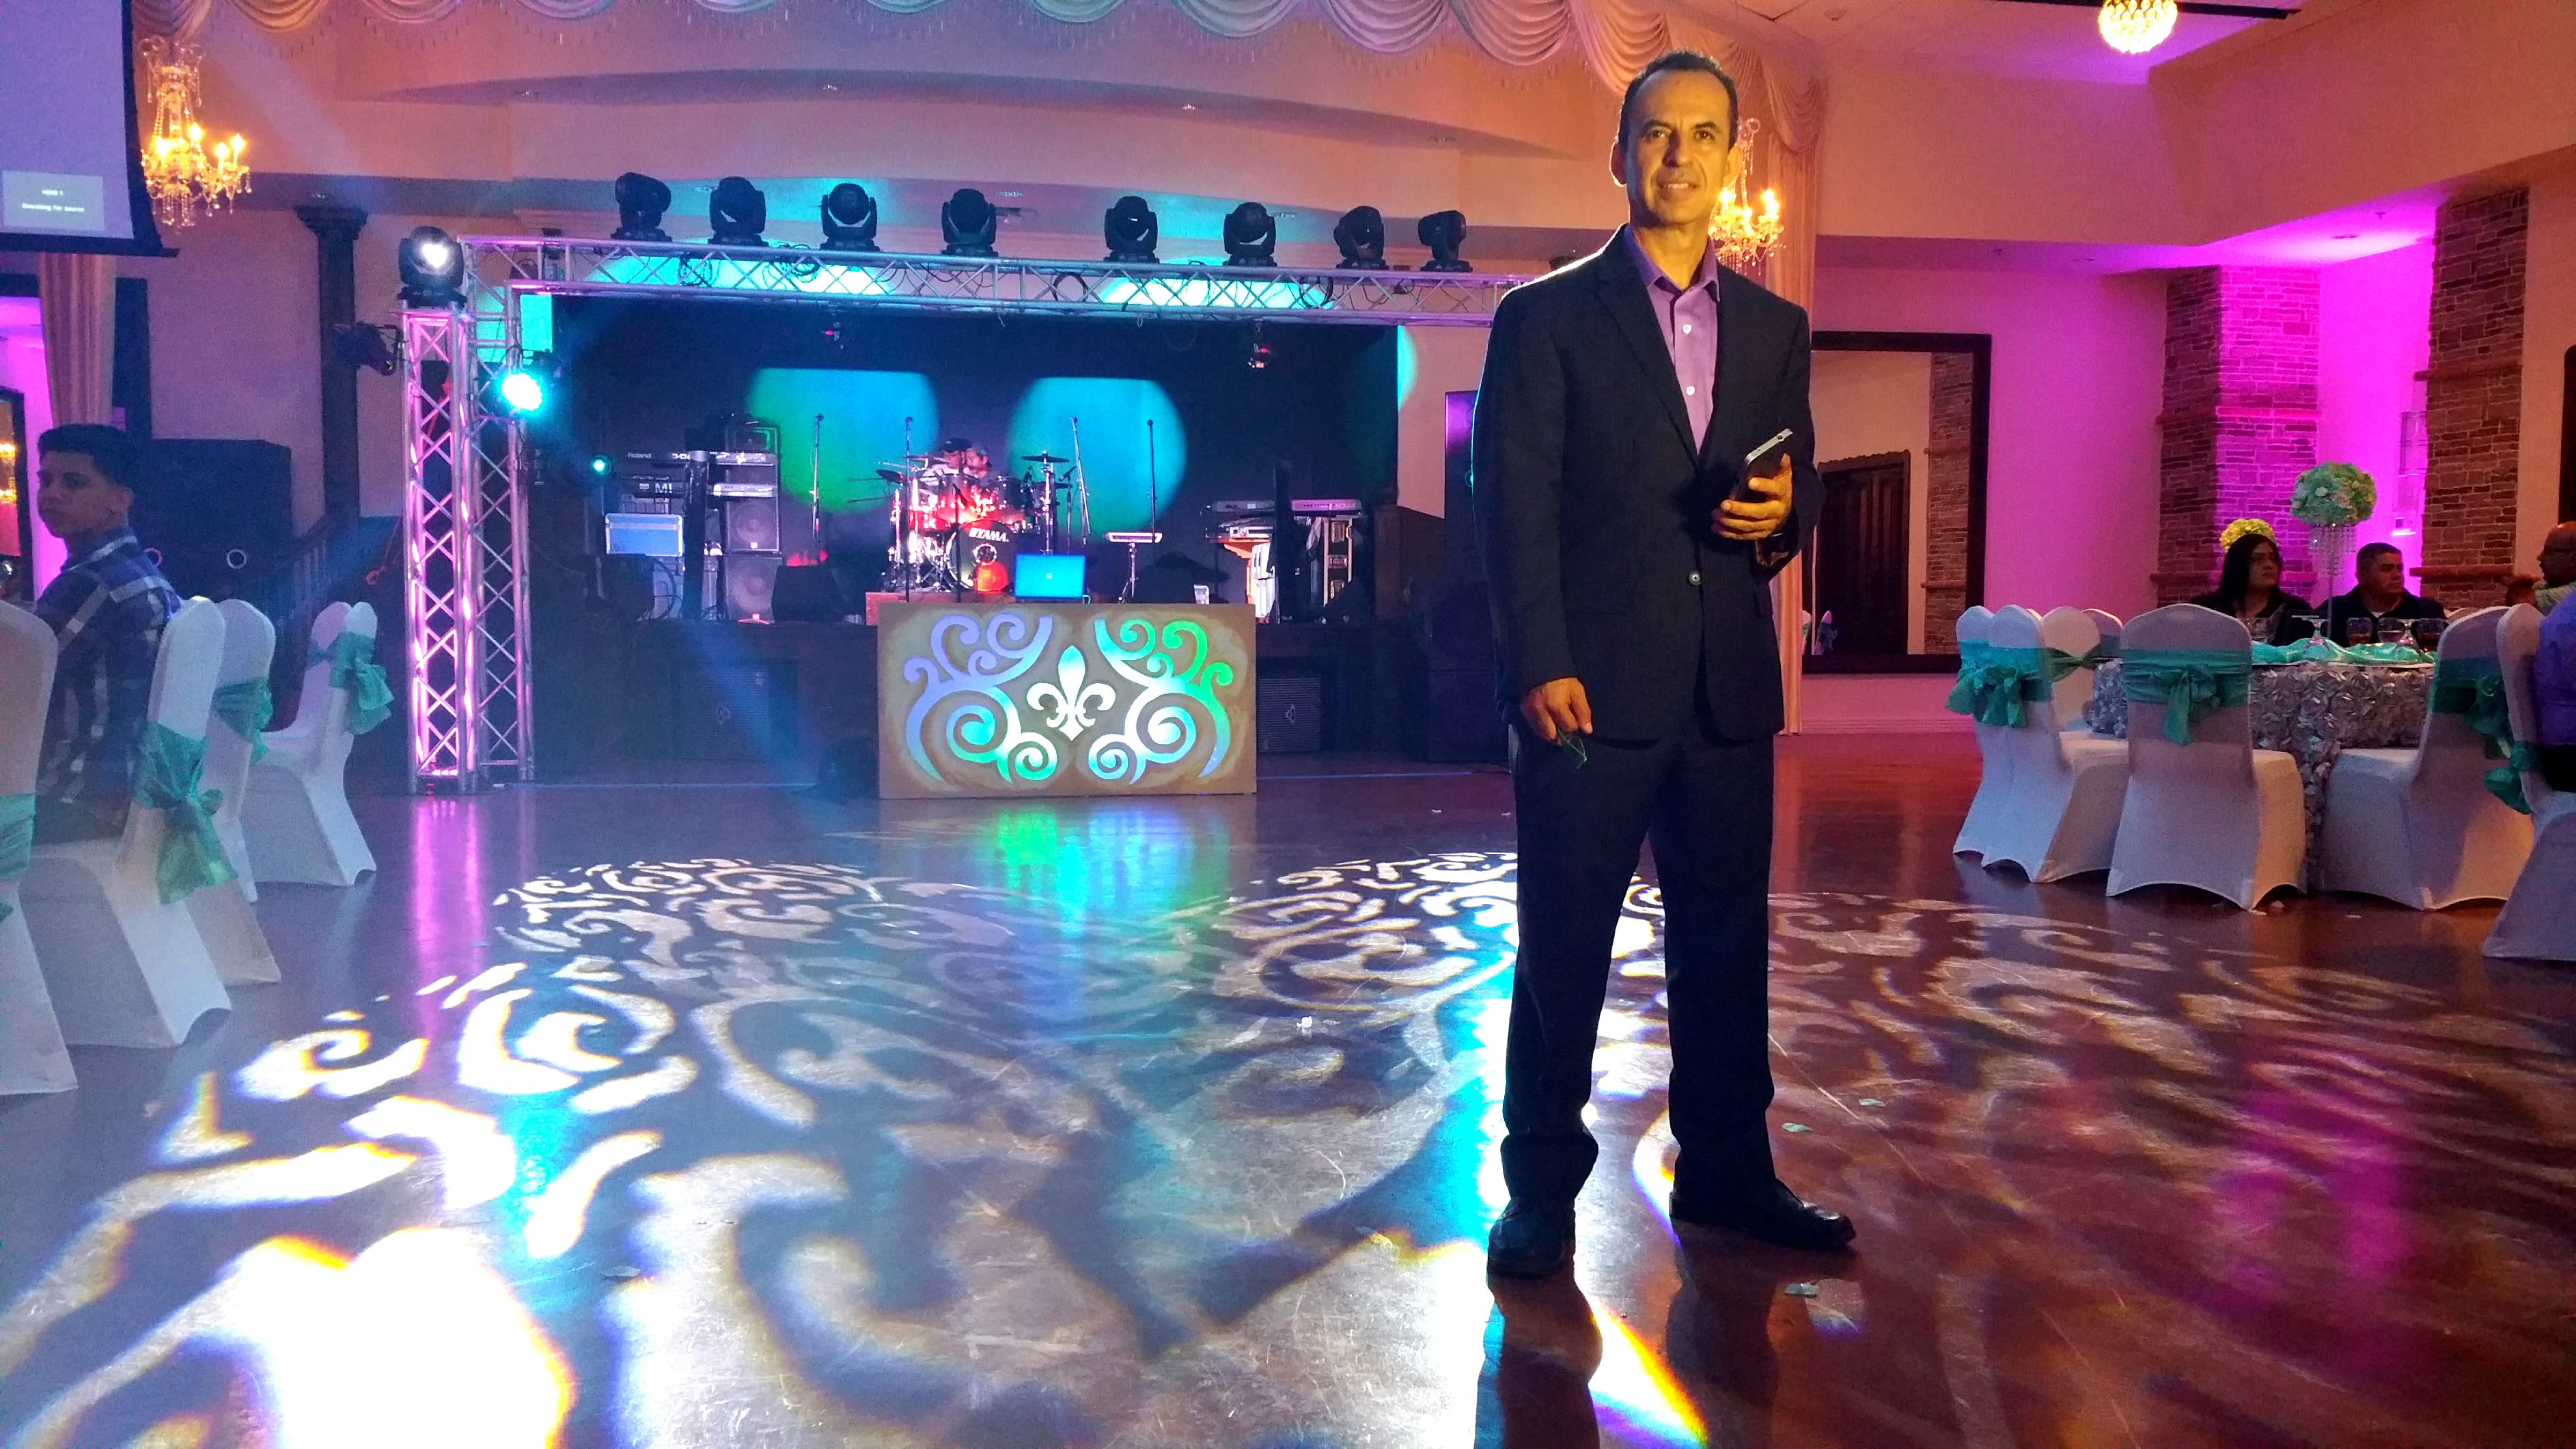 Hector LaRotta - Houston Memorable Events. HD Video, DJ Entertainment and EMCEE, Decor Lighting and Photo Booth